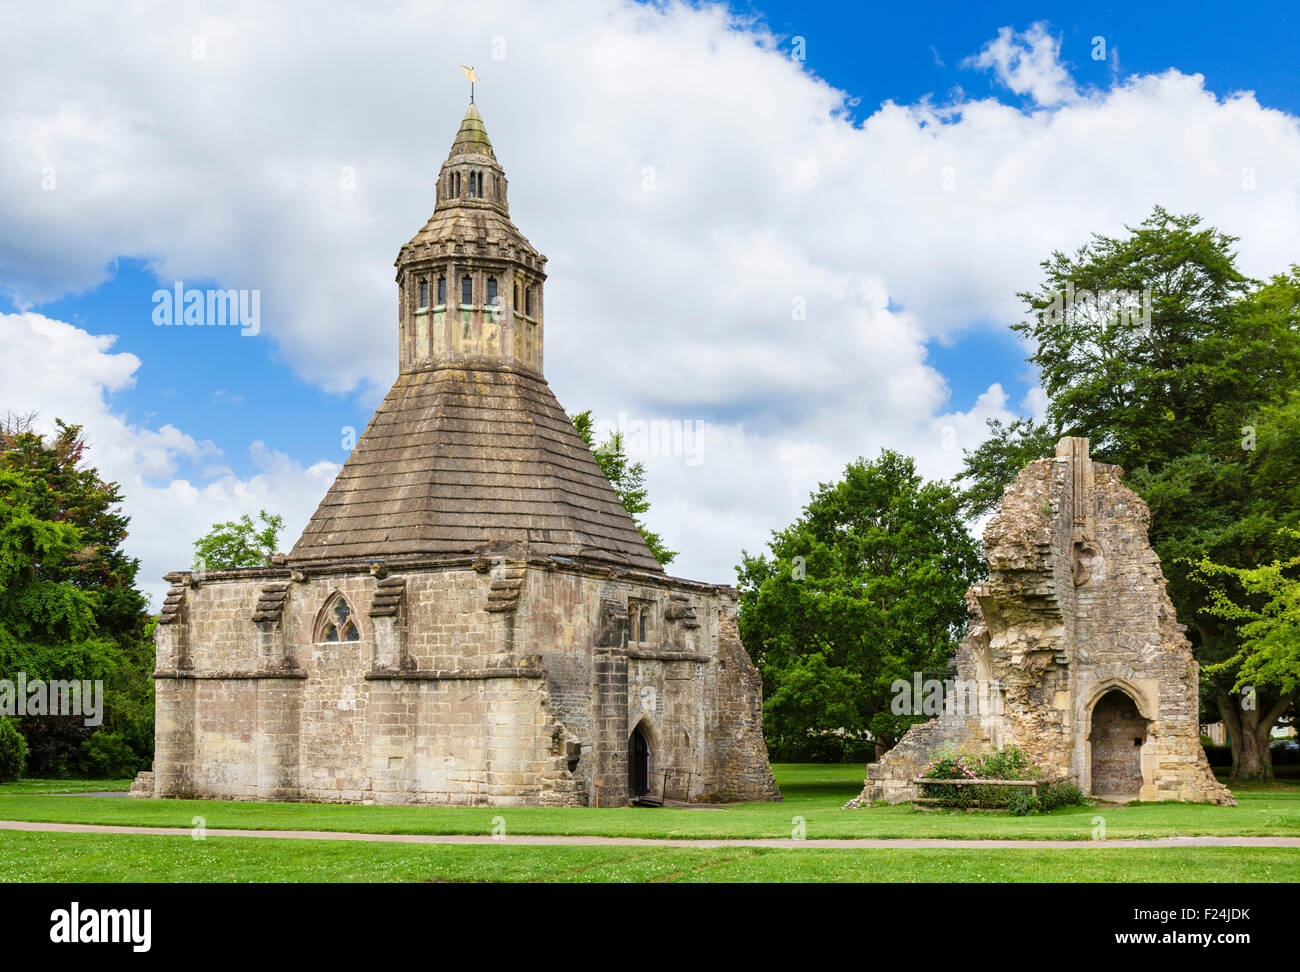 The Abbot's Kitchen at Glastonbury Abbey, associated with the legend of King Arthur, Glastonbury, Somerset, - Stock Image